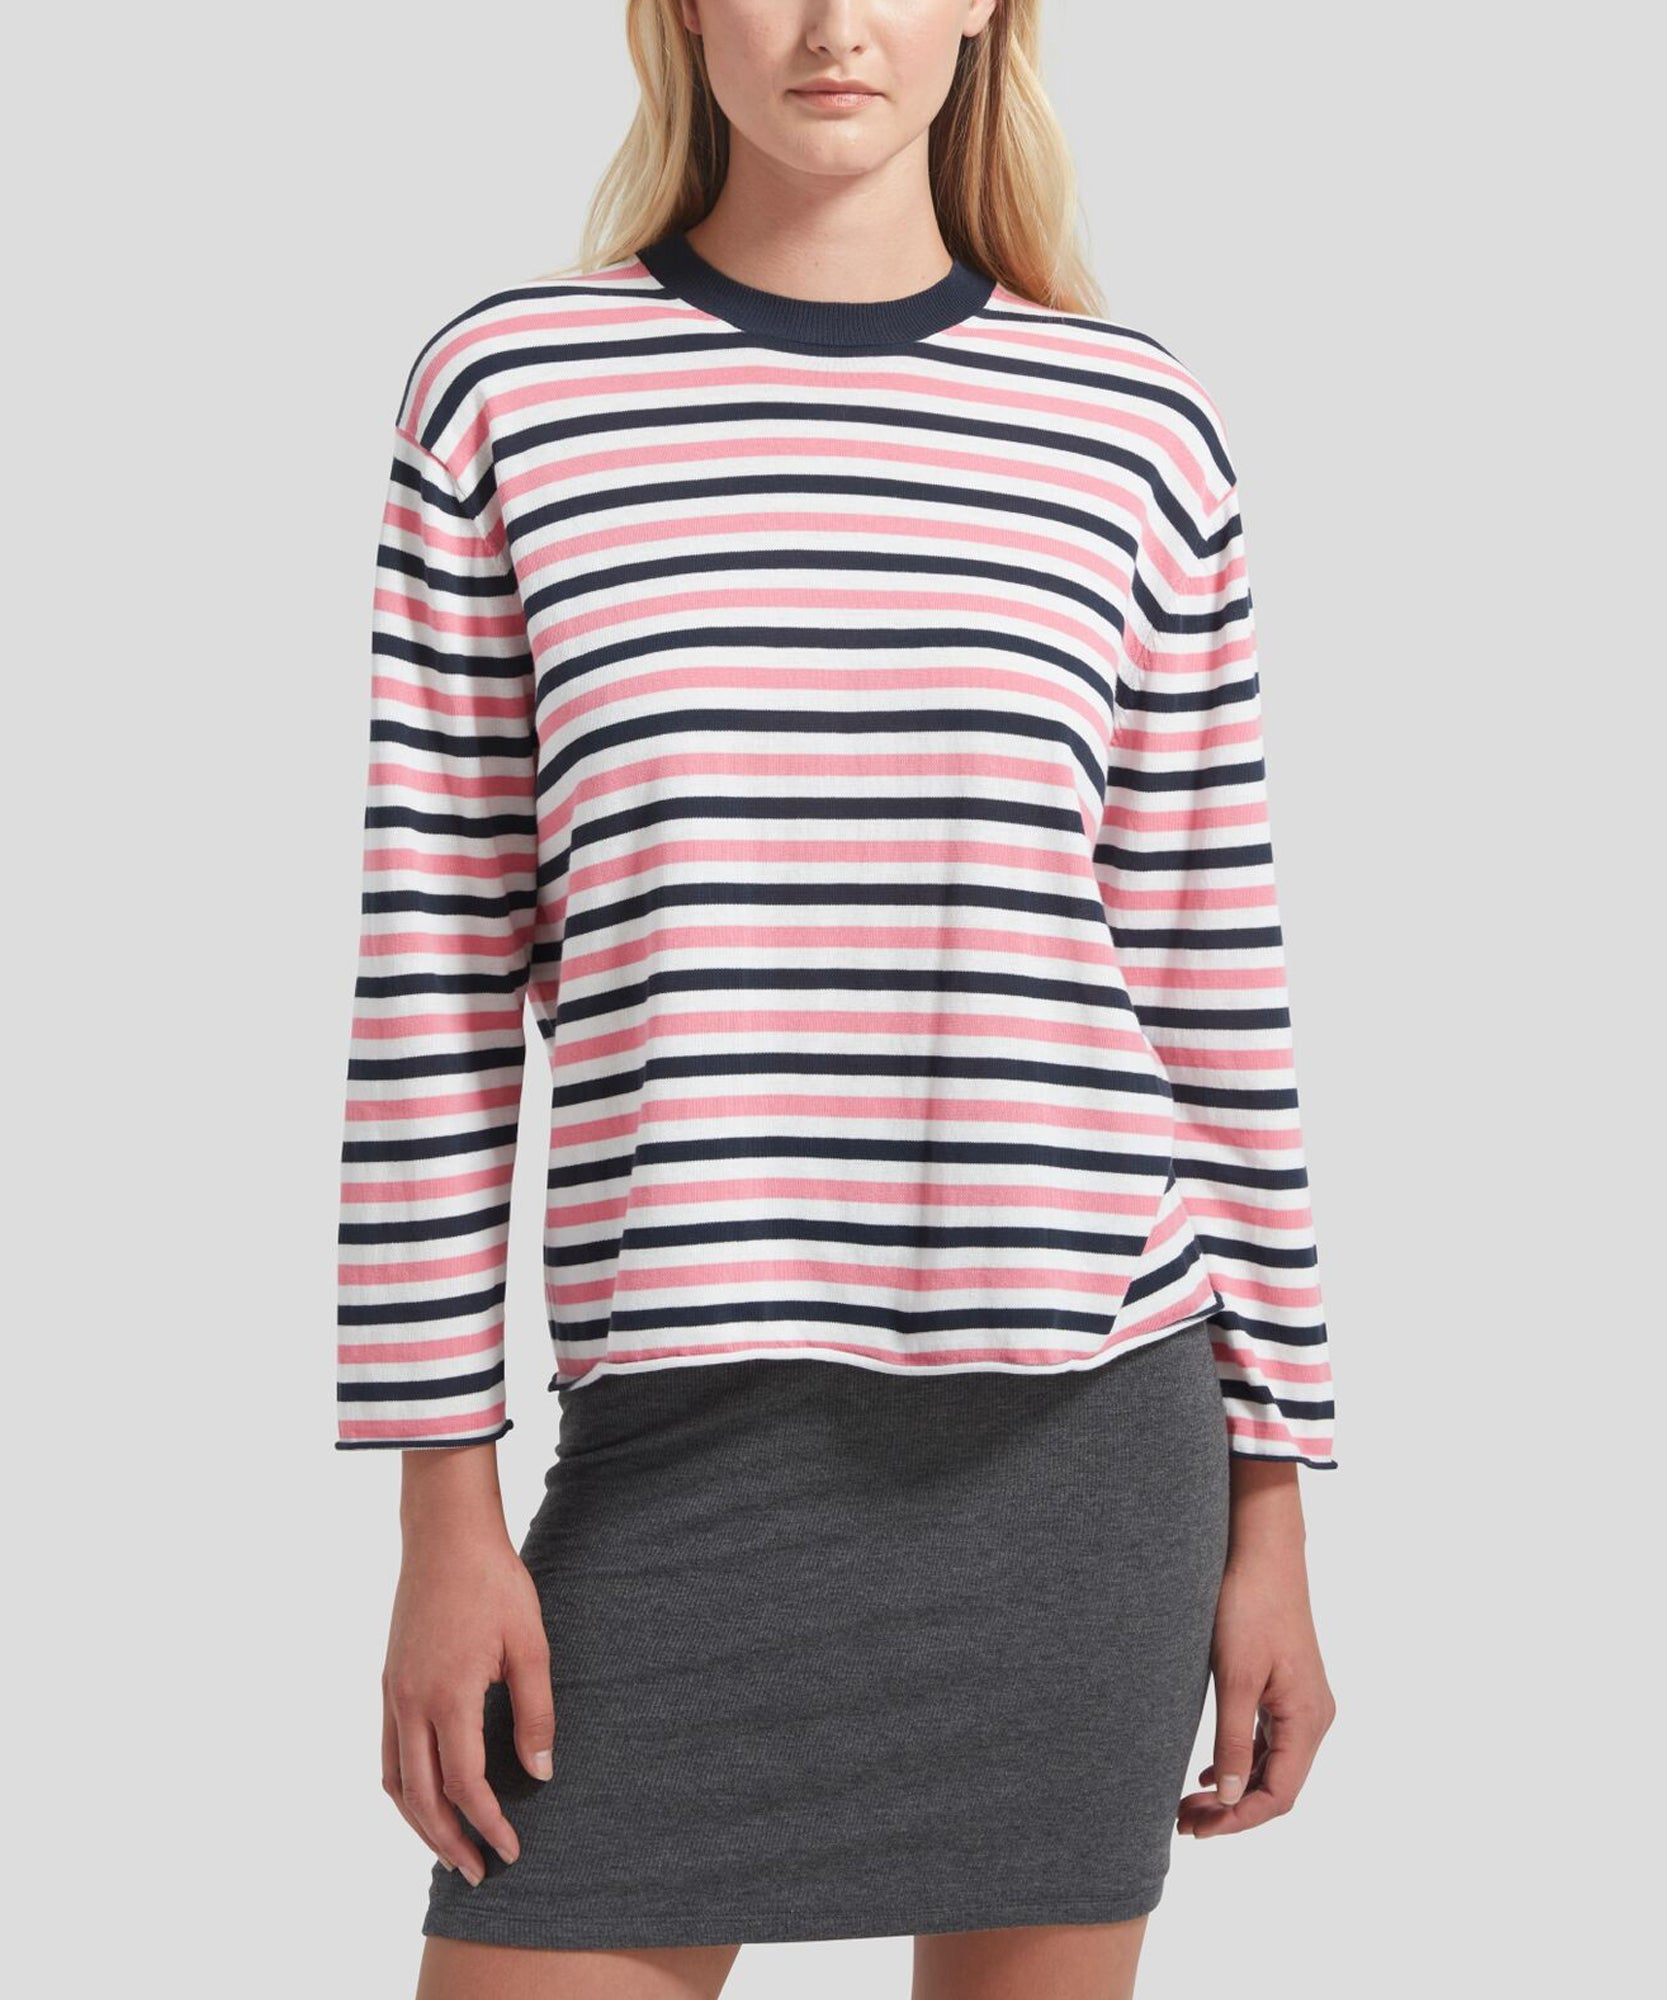 ATM Striped Long Sleeve Sweater